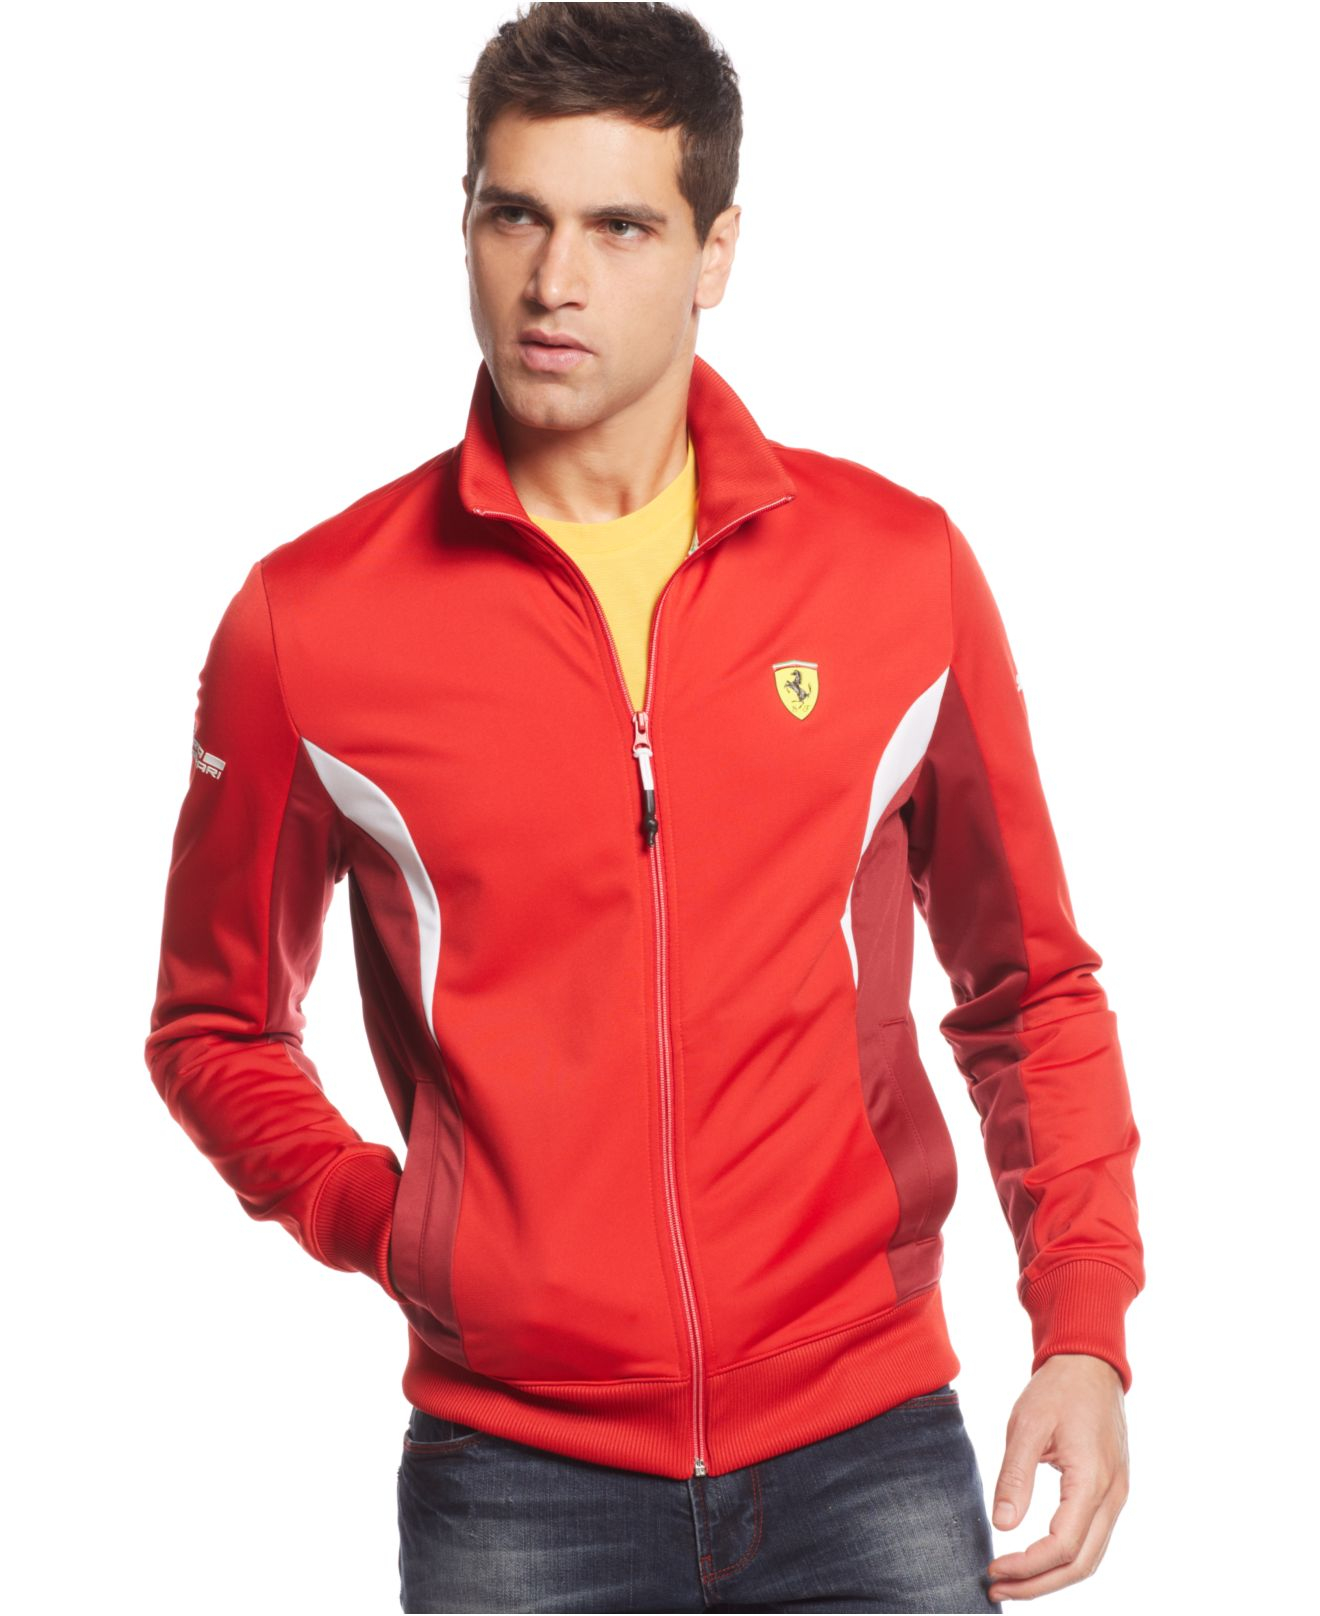 Puma Ferrari Red Track Jacket Cheaper Than Retail Price Buy Clothing Accessories And Lifestyle Products For Women Men